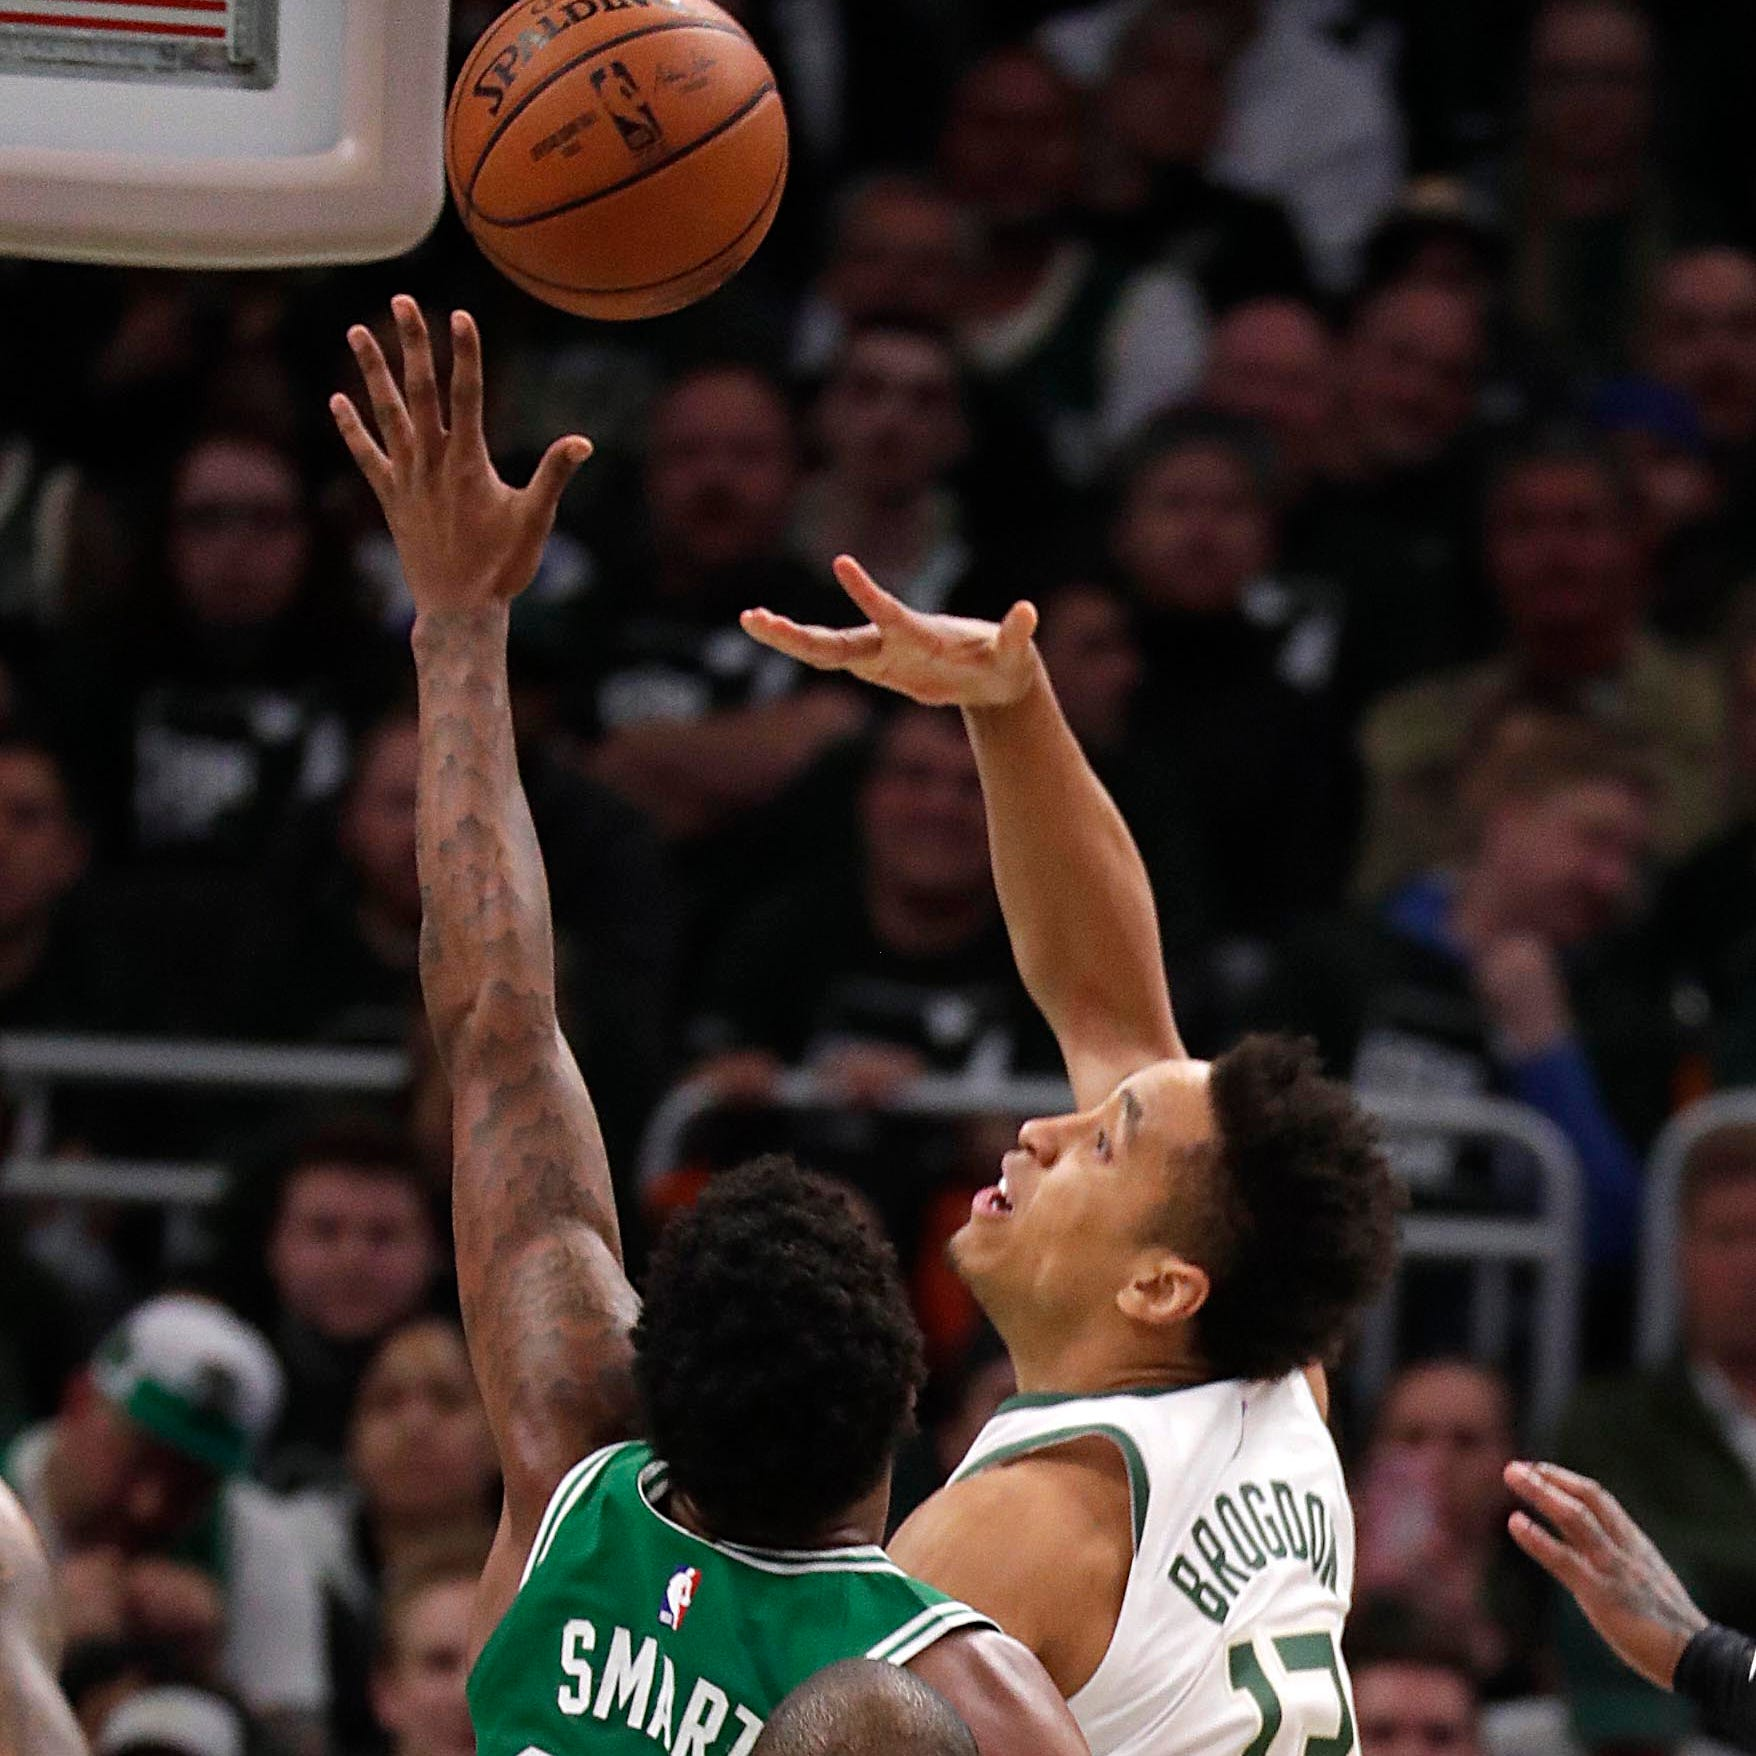 Malcolm Brogdon is back, with his usual shooting, defense and drives to the rim